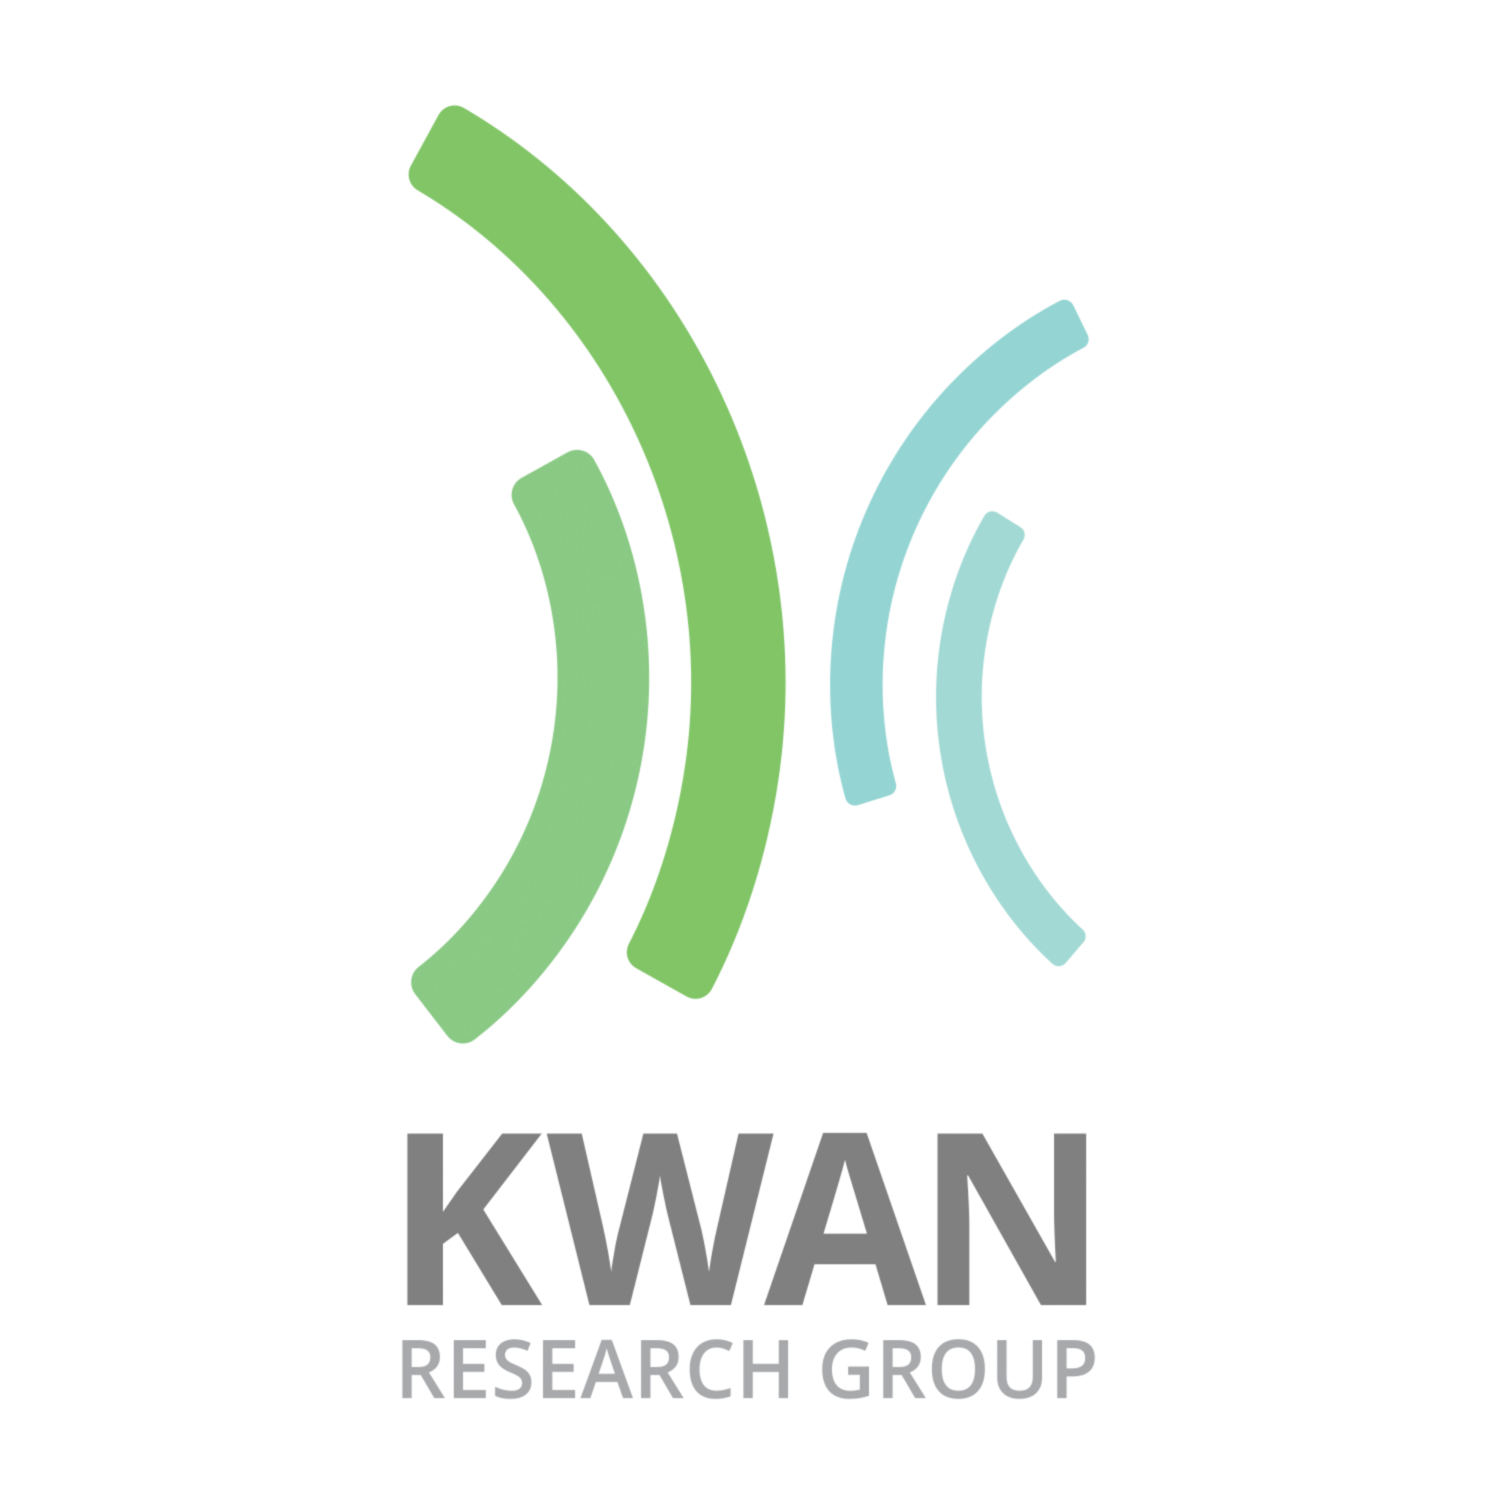 Kwan Research Group